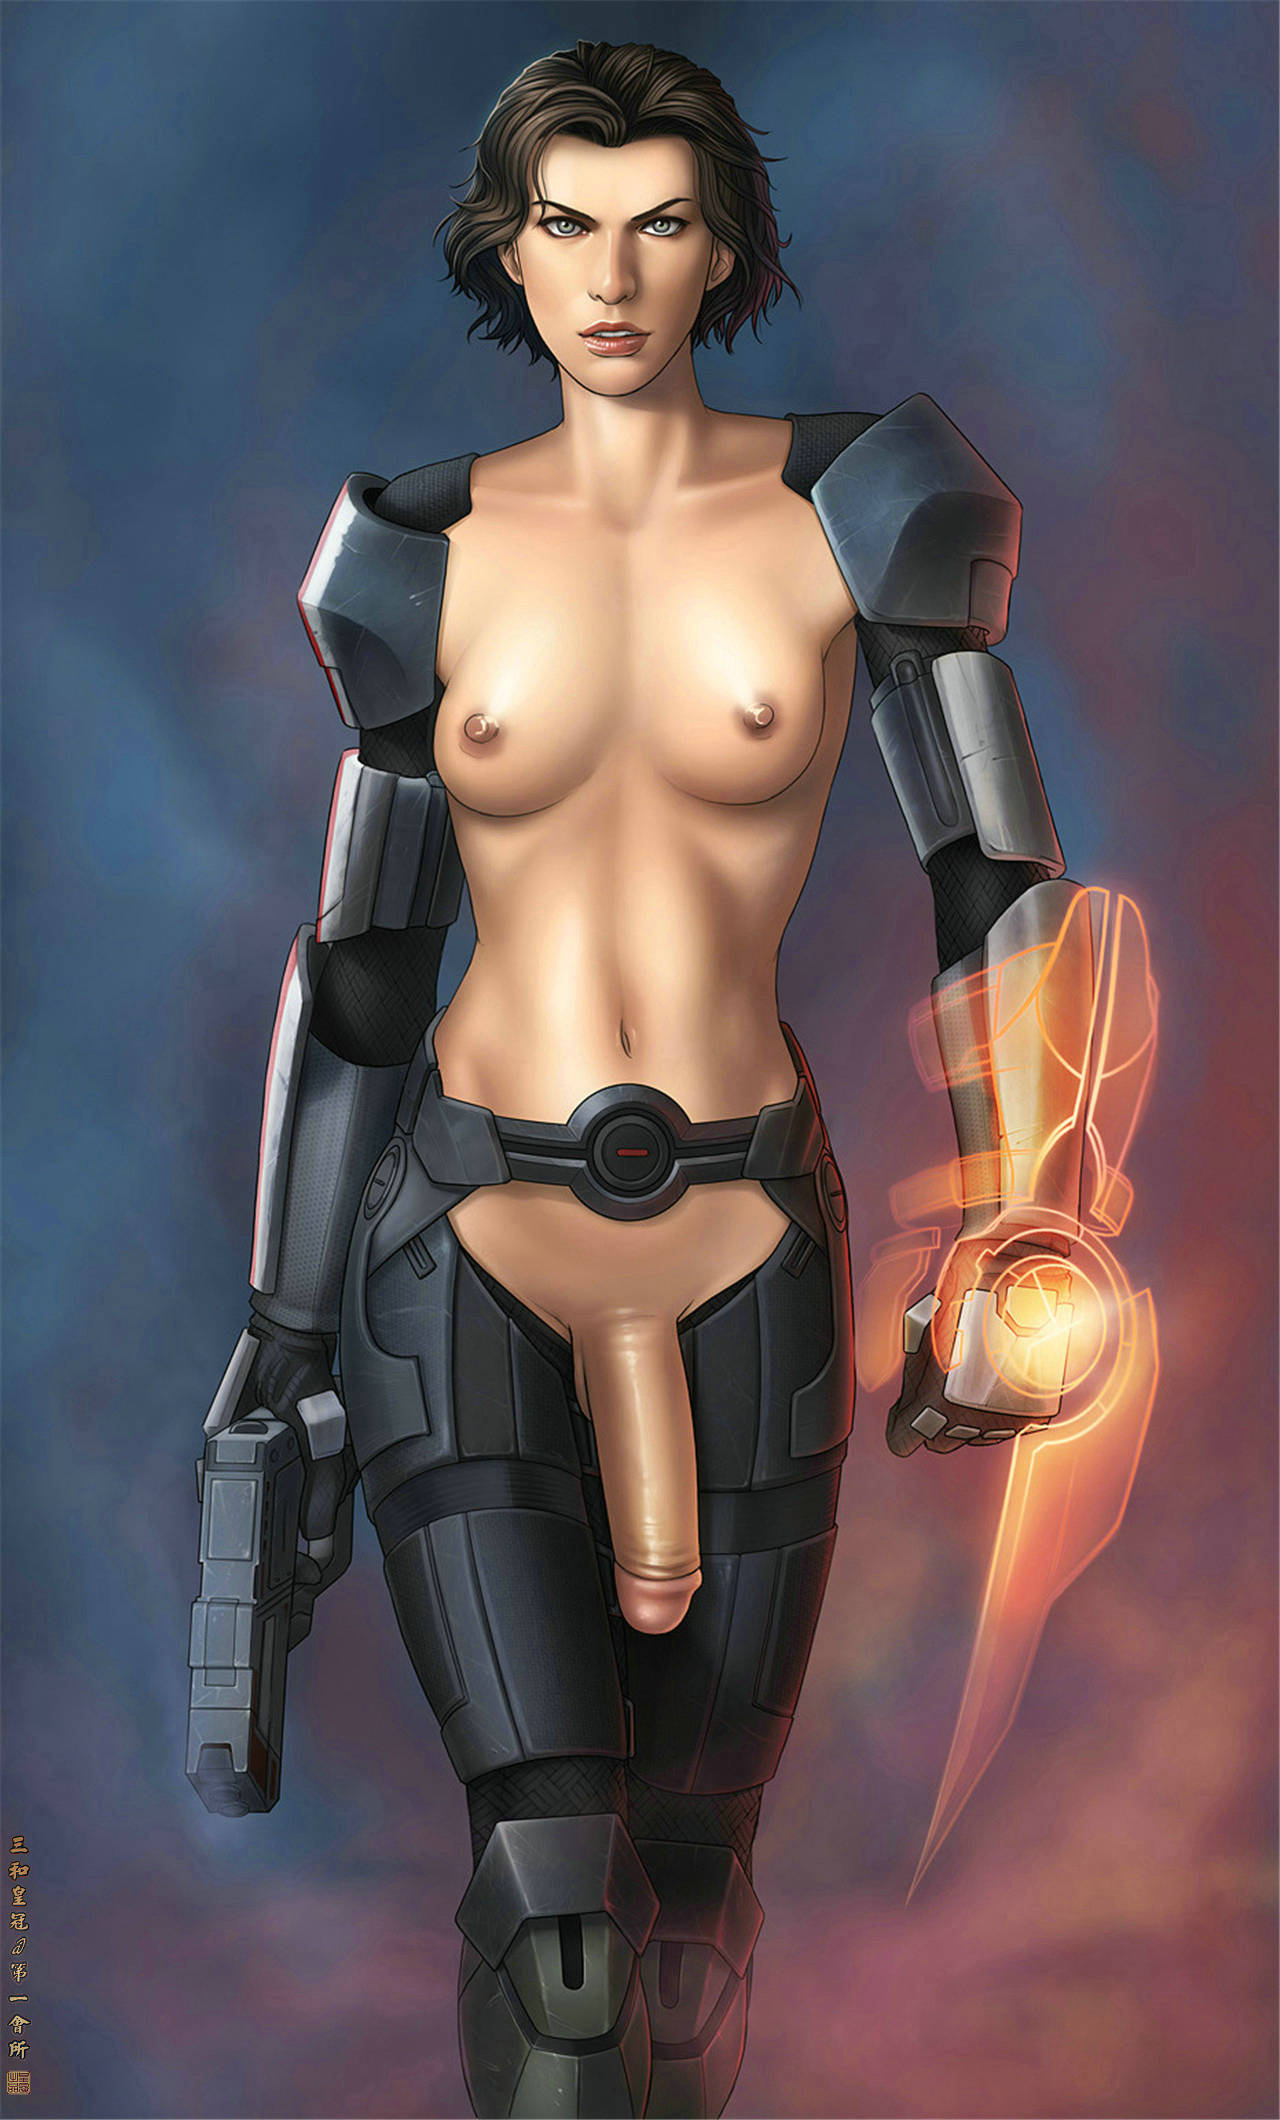 Mass effect porn shrek softcore curly daughter